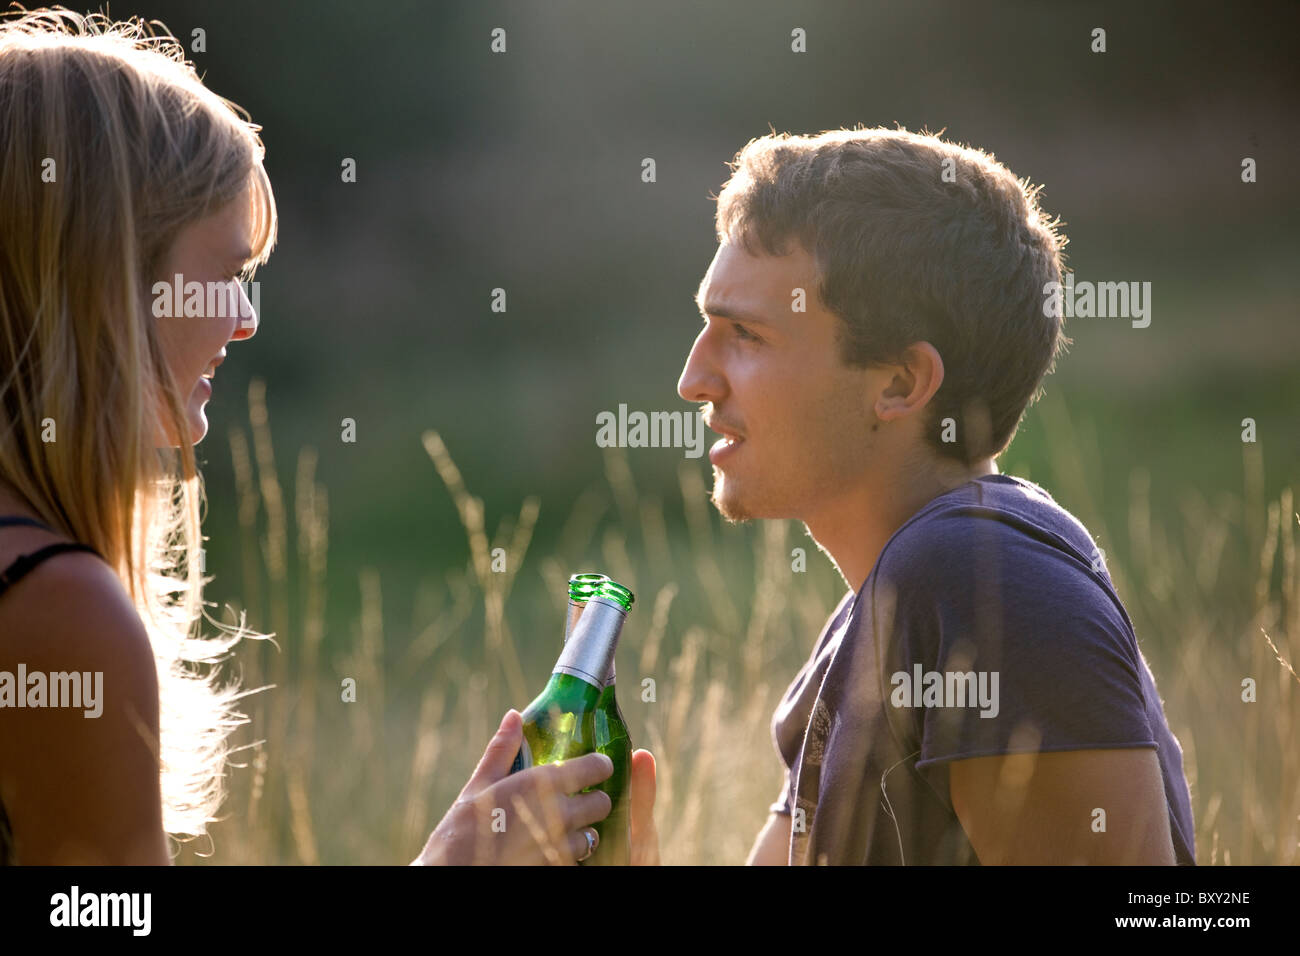 A young couple sitting outdoors, drinking beer - Stock Image